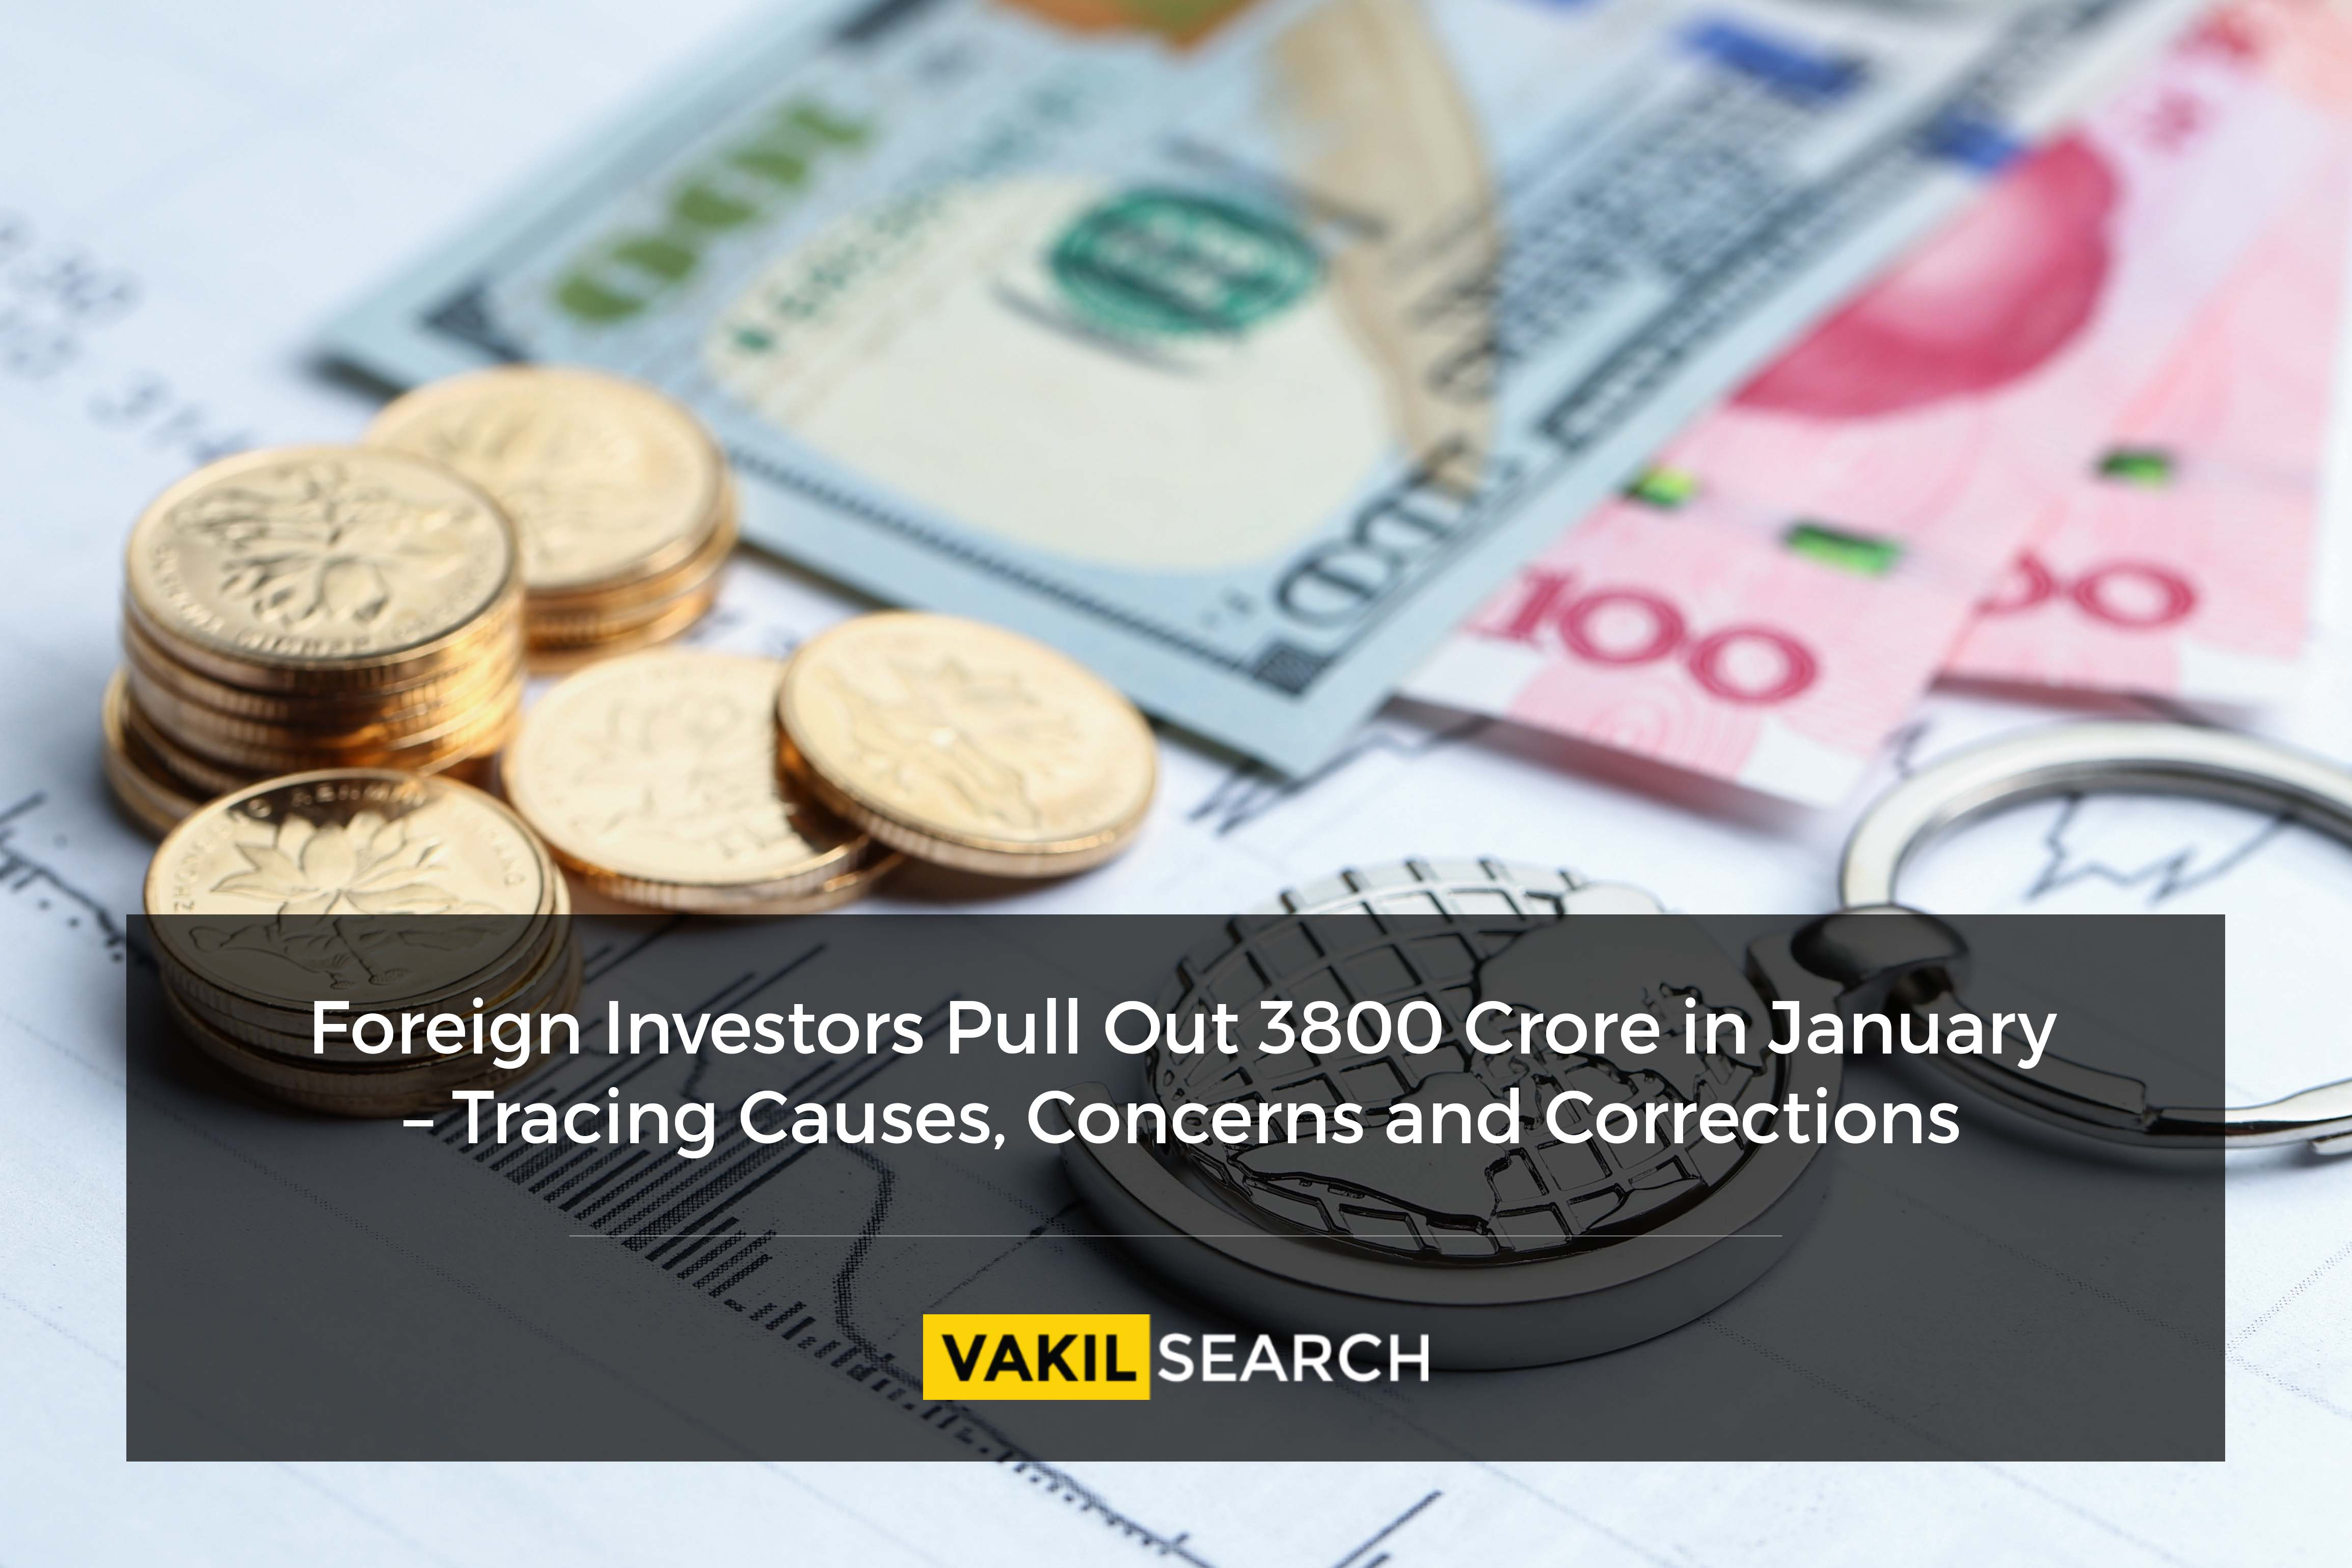 Foreign Investors Pull Out 3800 Crore in January – Tracing Causes